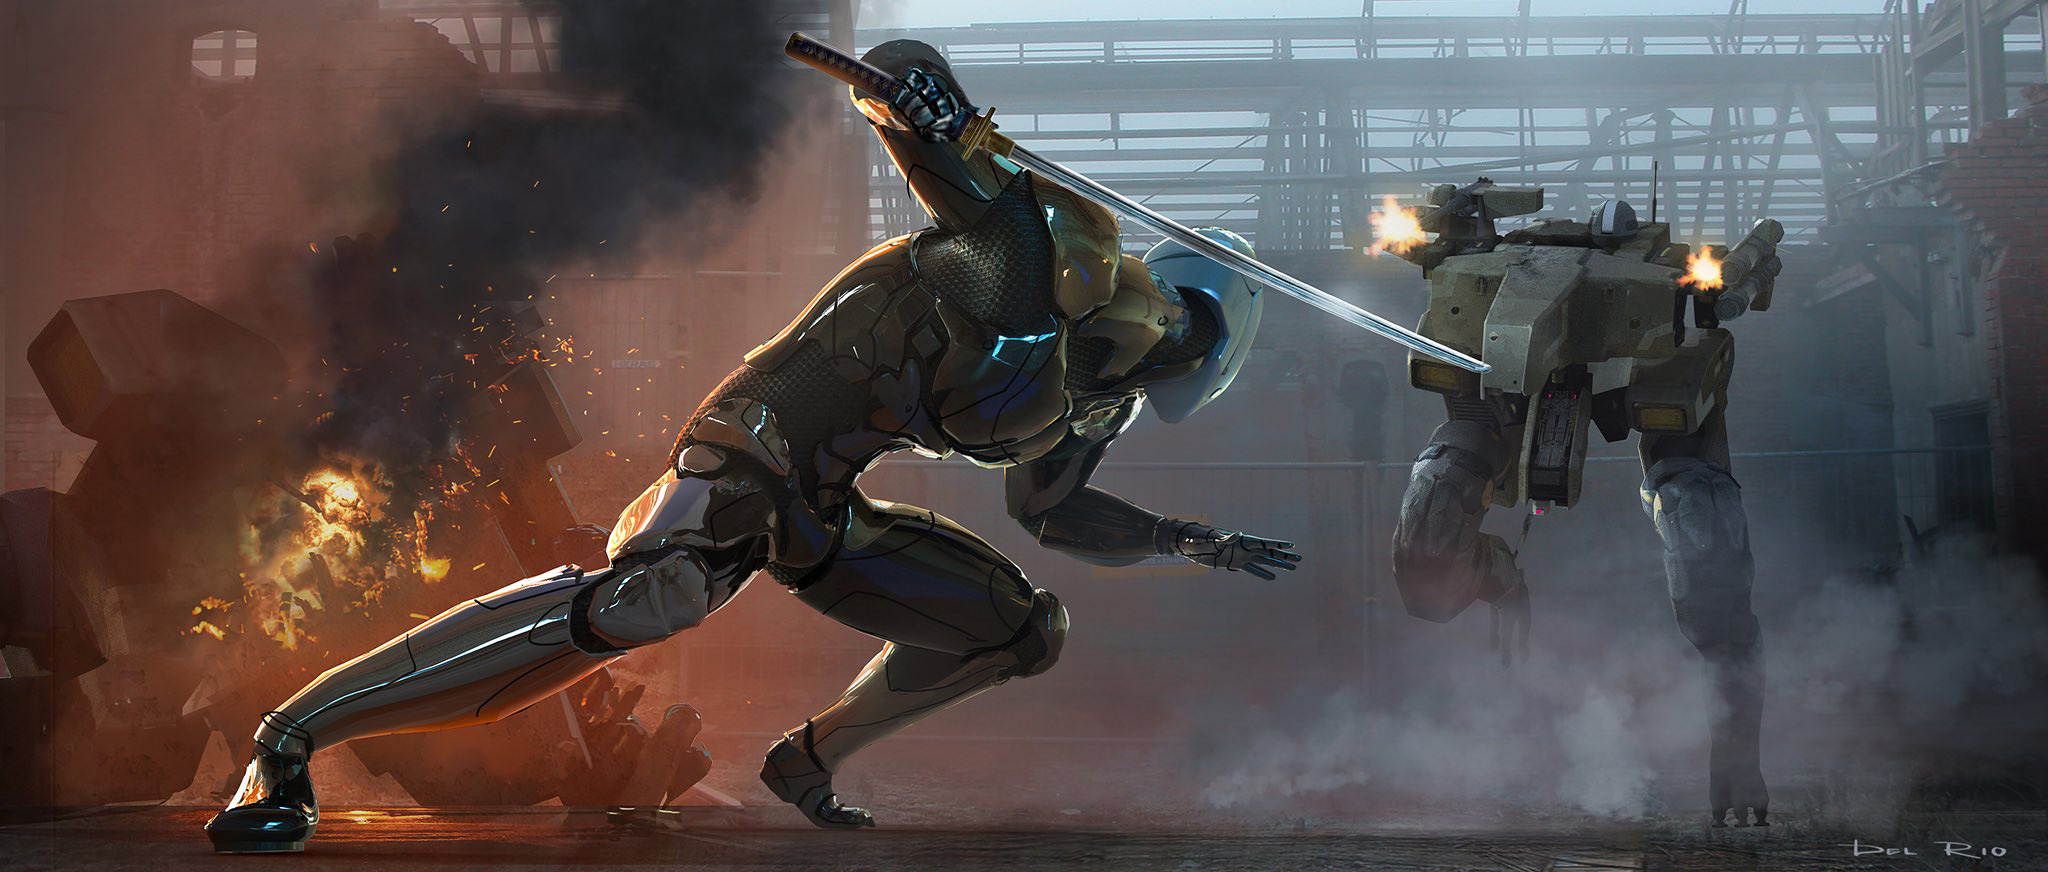 Metal-Gear-Solid-Movie-Concept-Art-2.jpg